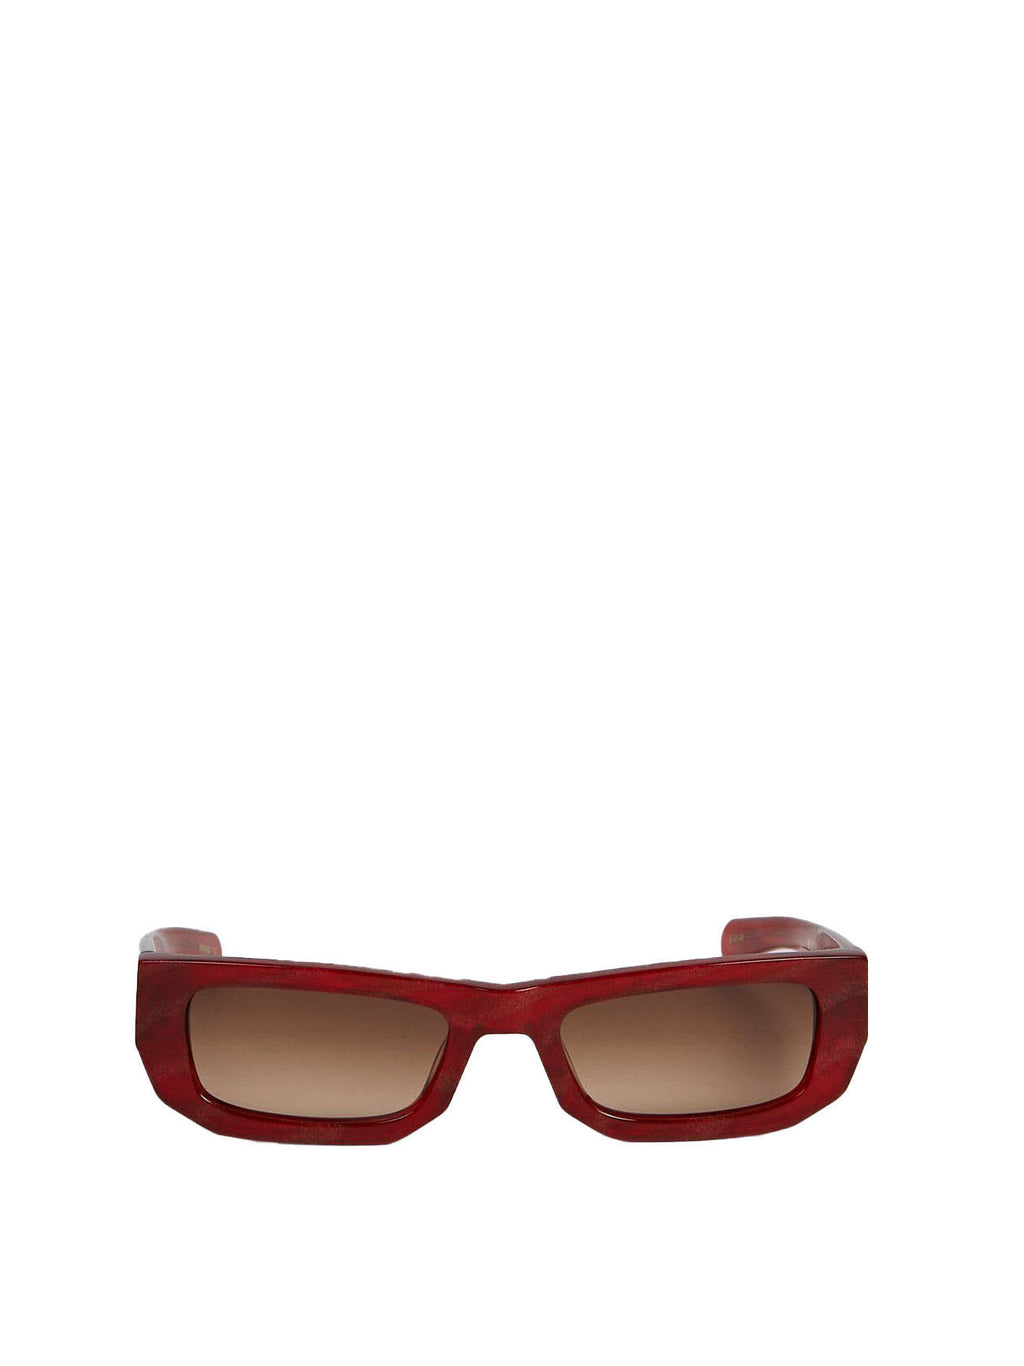 Red & Brown Bricktop Sunglasses